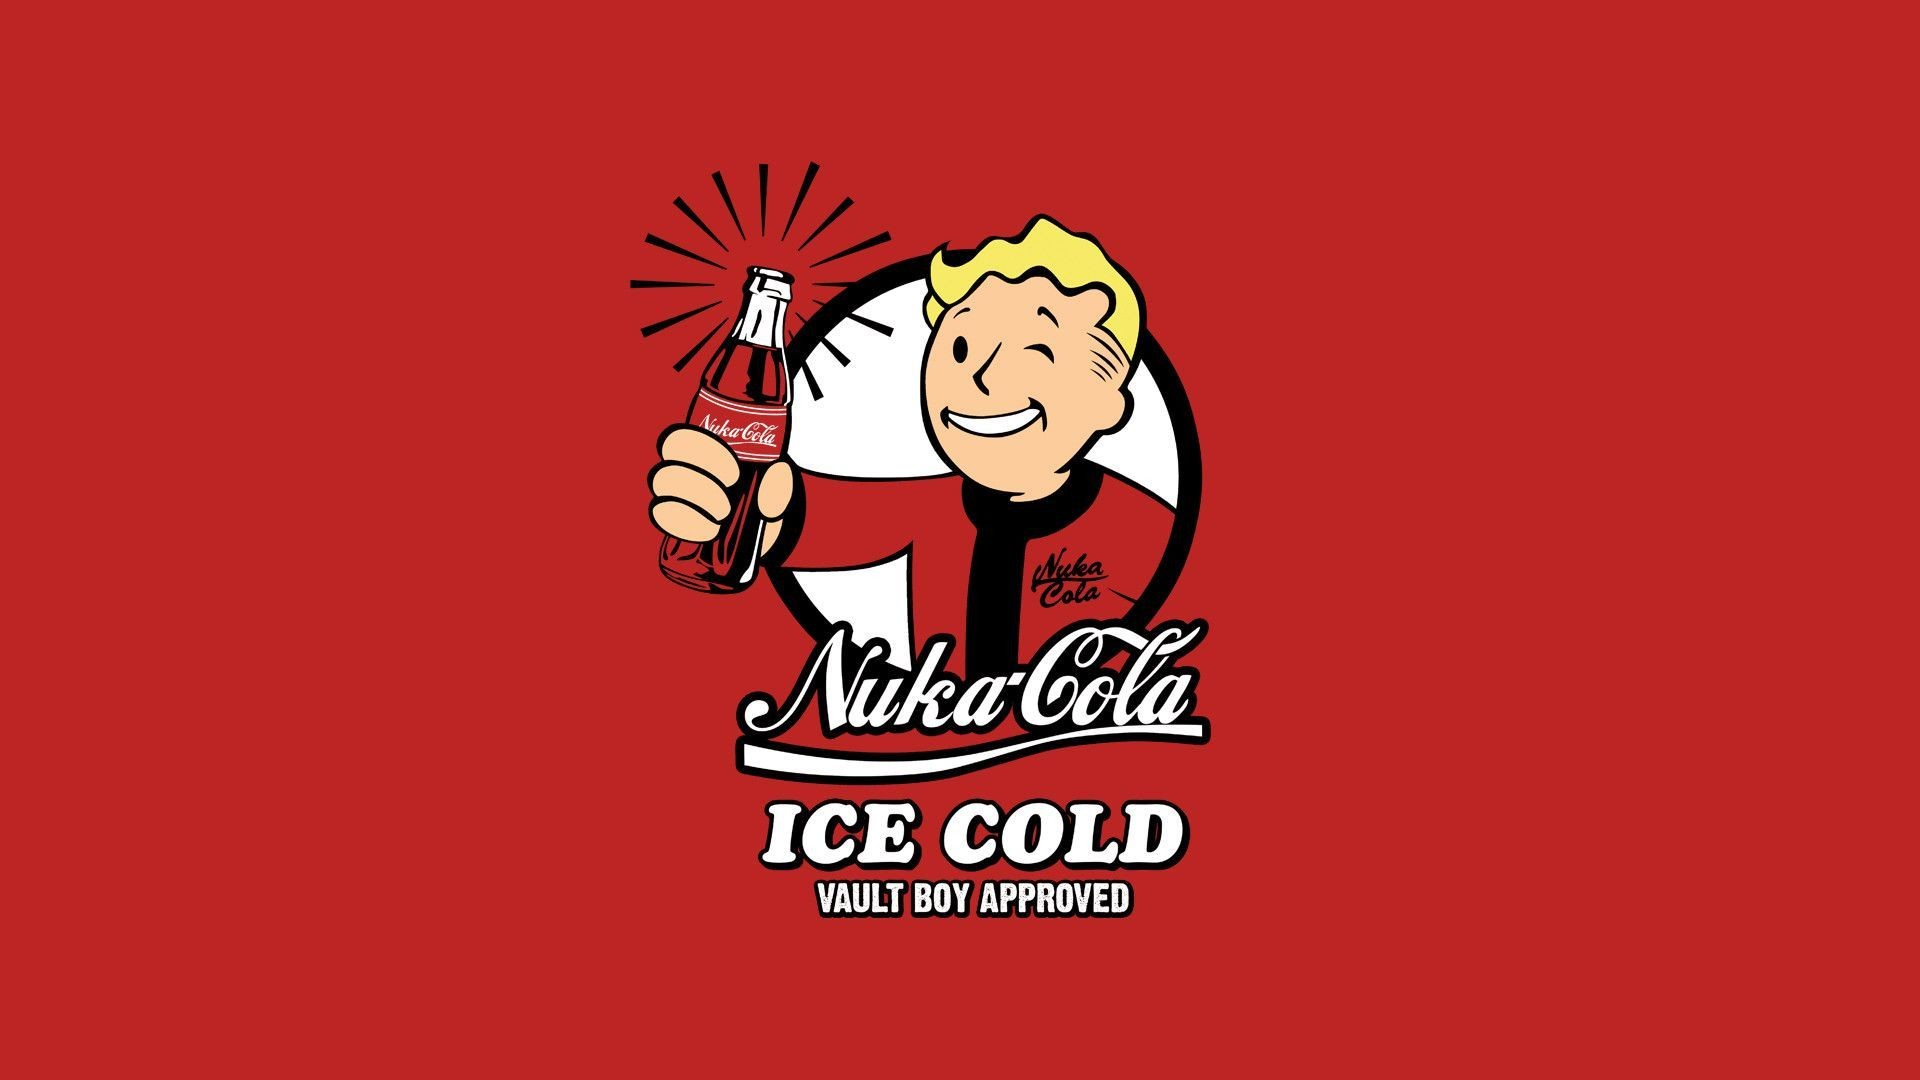 Nuka Cola Wallpaper Download Free Stunning Backgrounds For